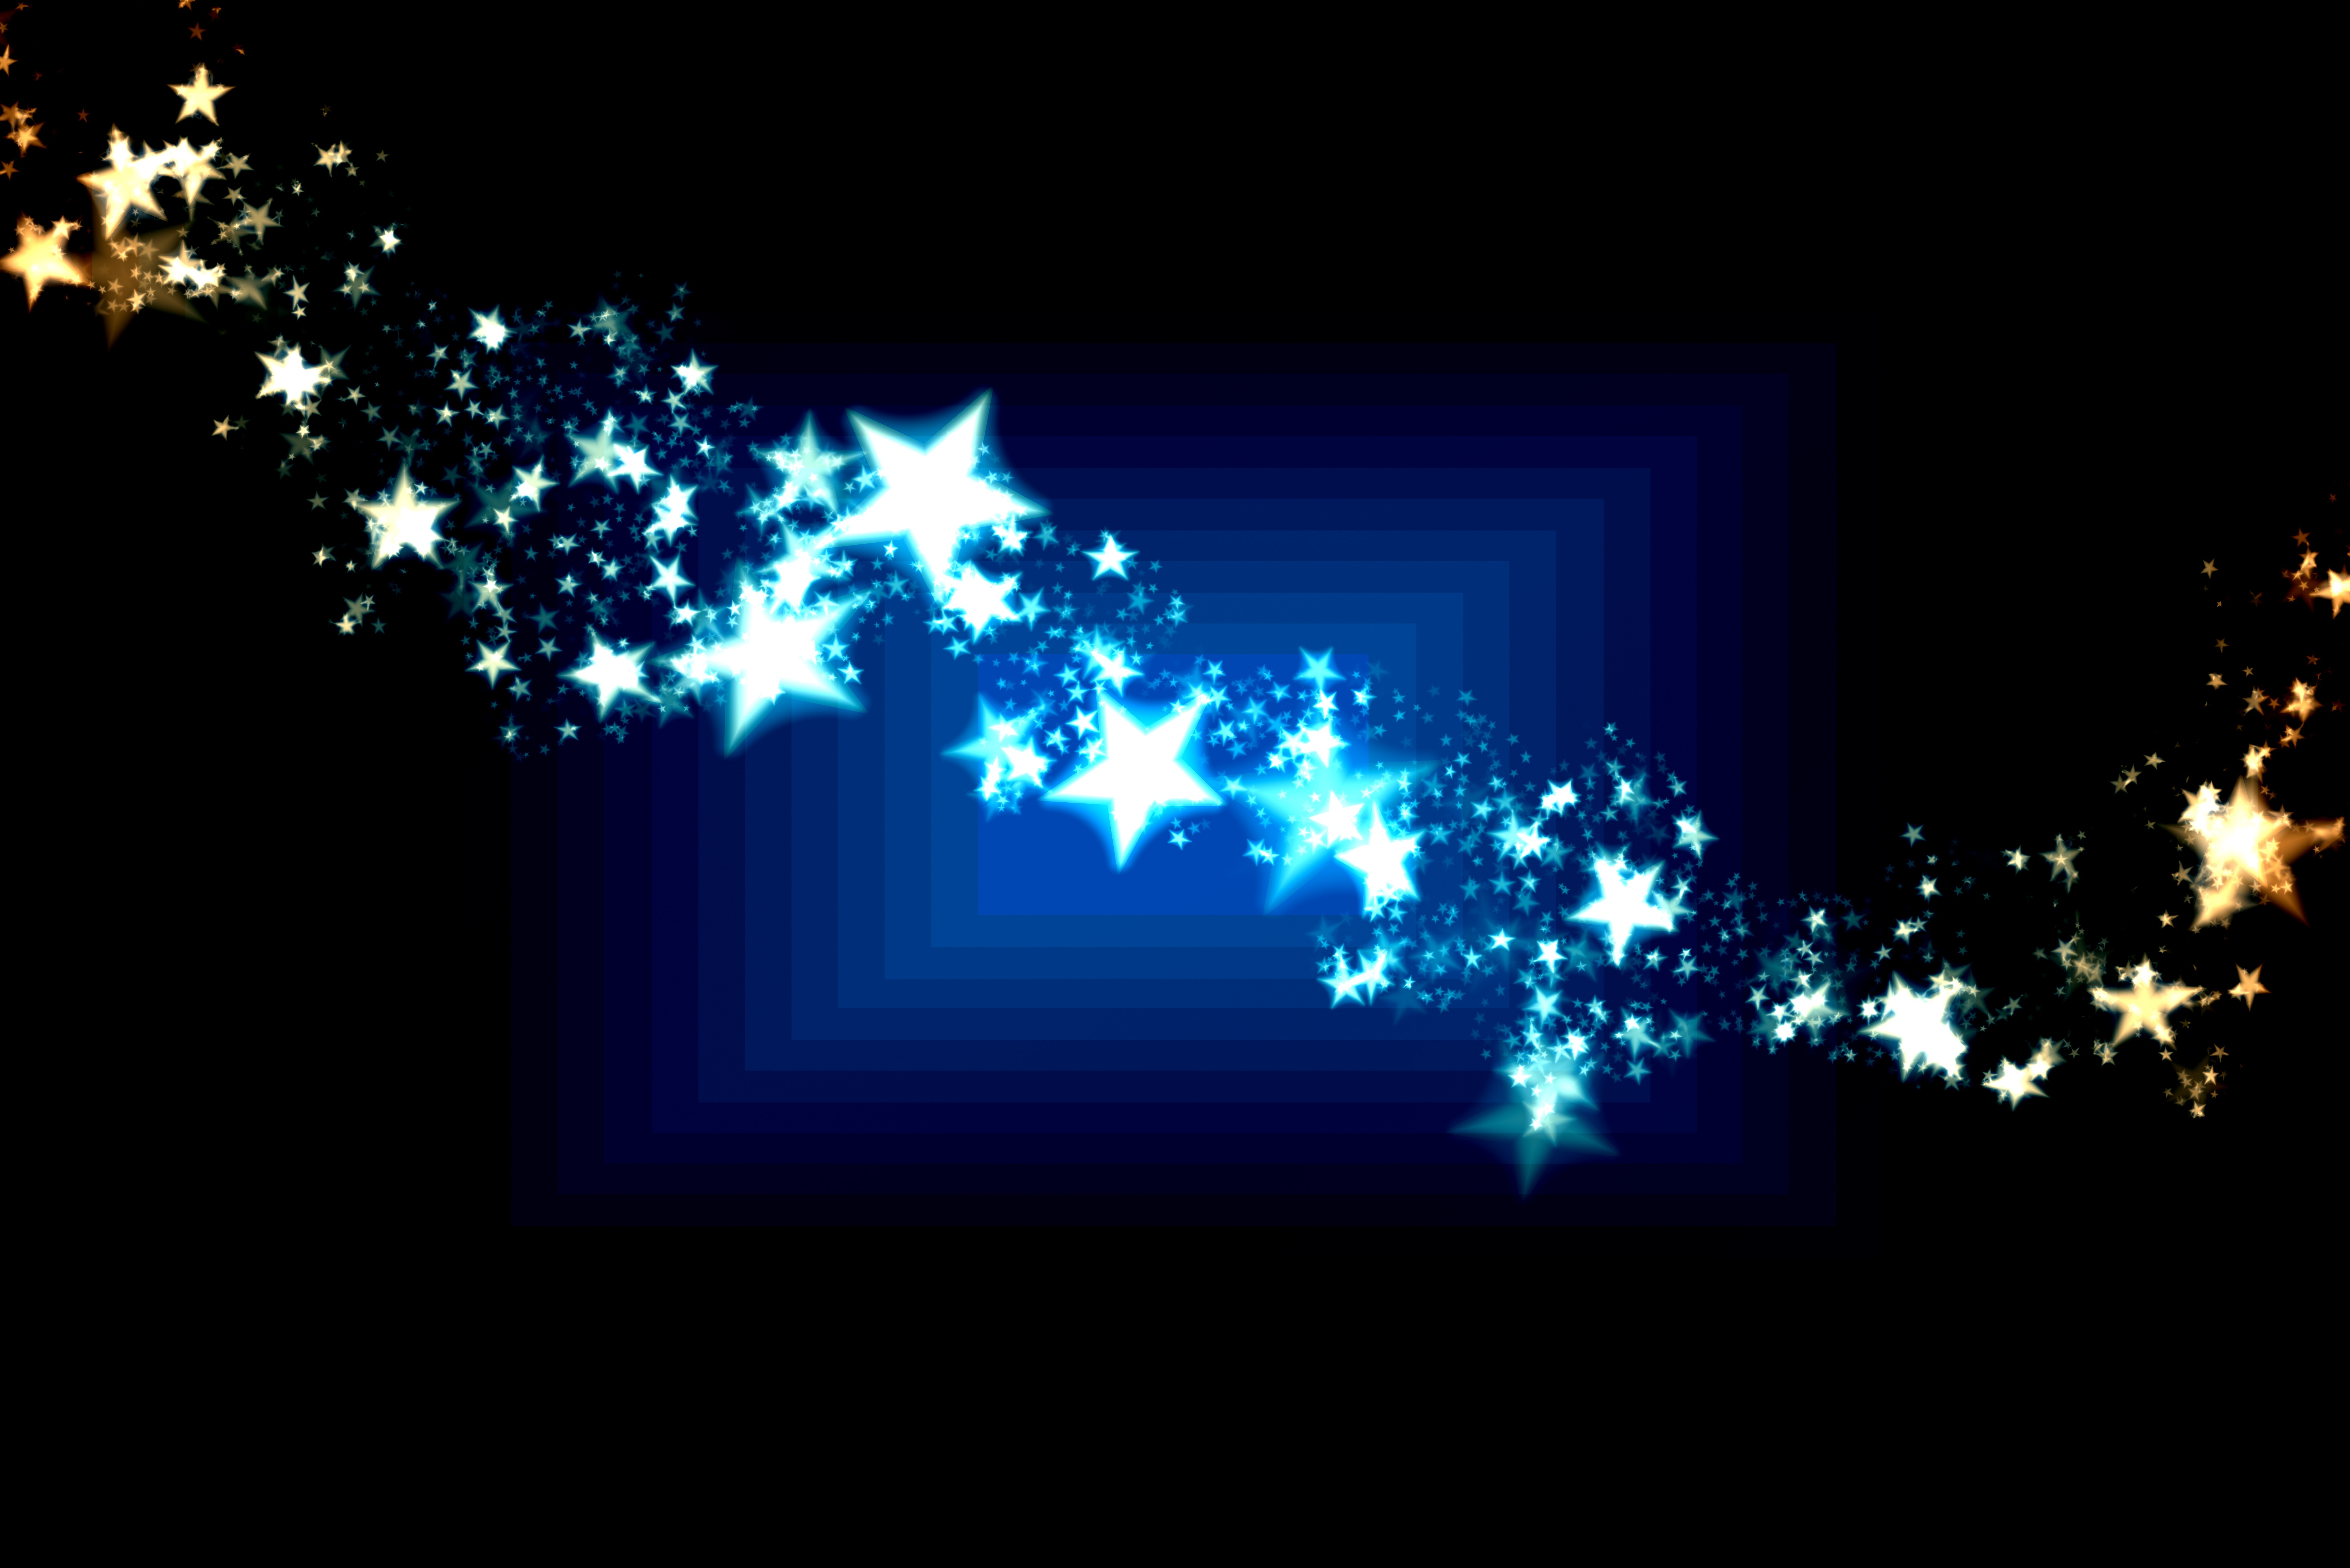 99247 download wallpaper Abstract, Art, Dark, Stars screensavers and pictures for free